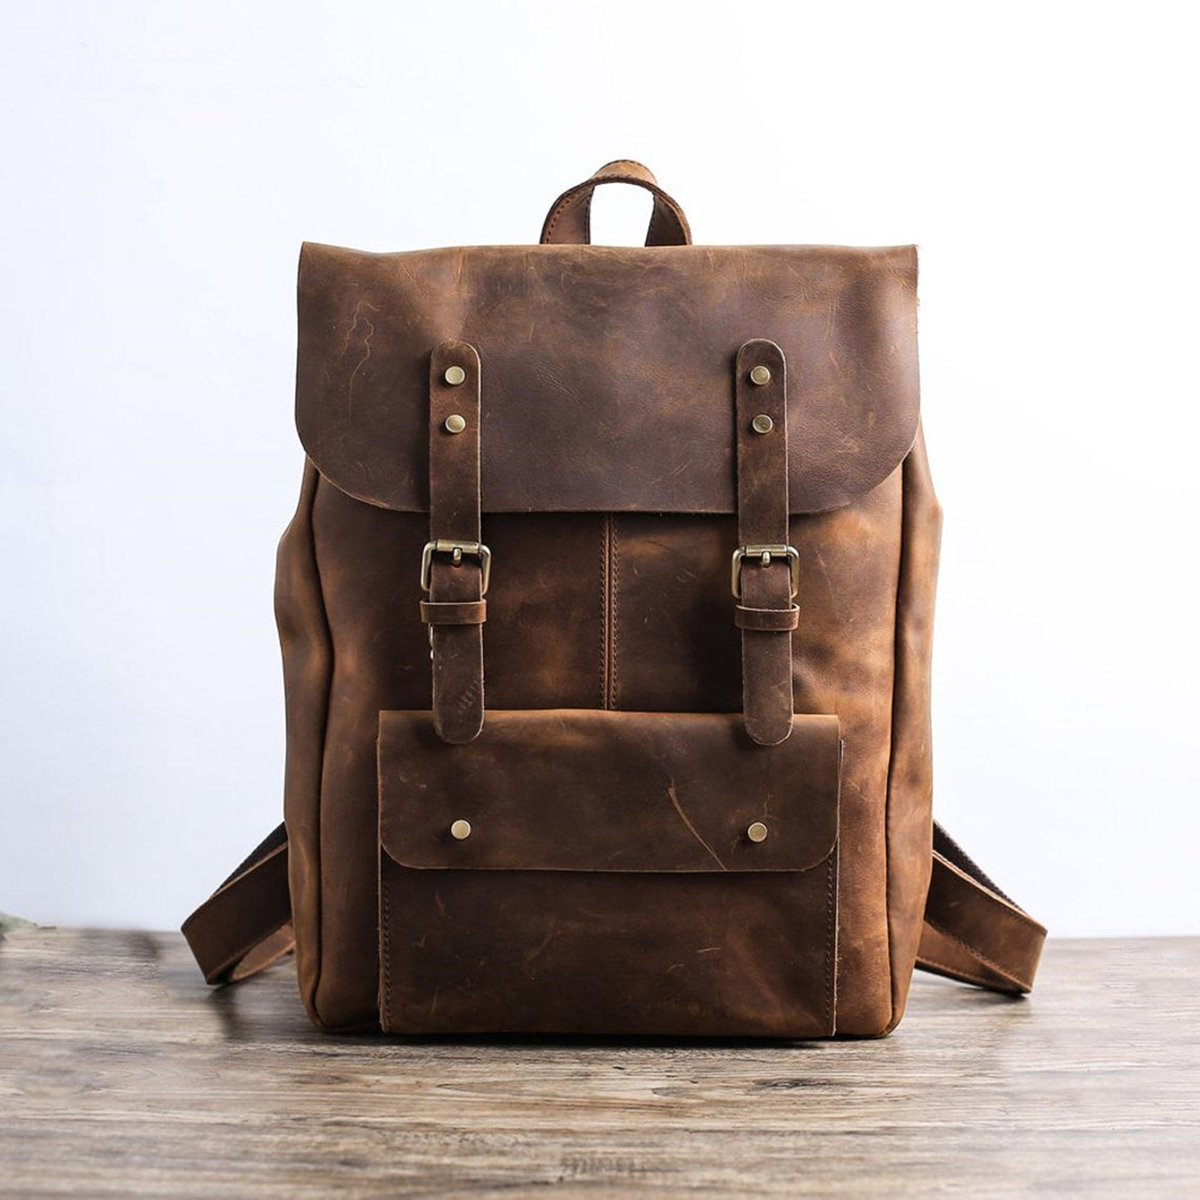 Excited to share the latest addition to my #etsy shop: Handmade Full Grain Leather School Backpack Travel Backpack Laptop Backpack Daily Backpack Personalized Leather Backpack  #brown #bachelorparty #thanksgiving #bohohippie #waxedbackpack